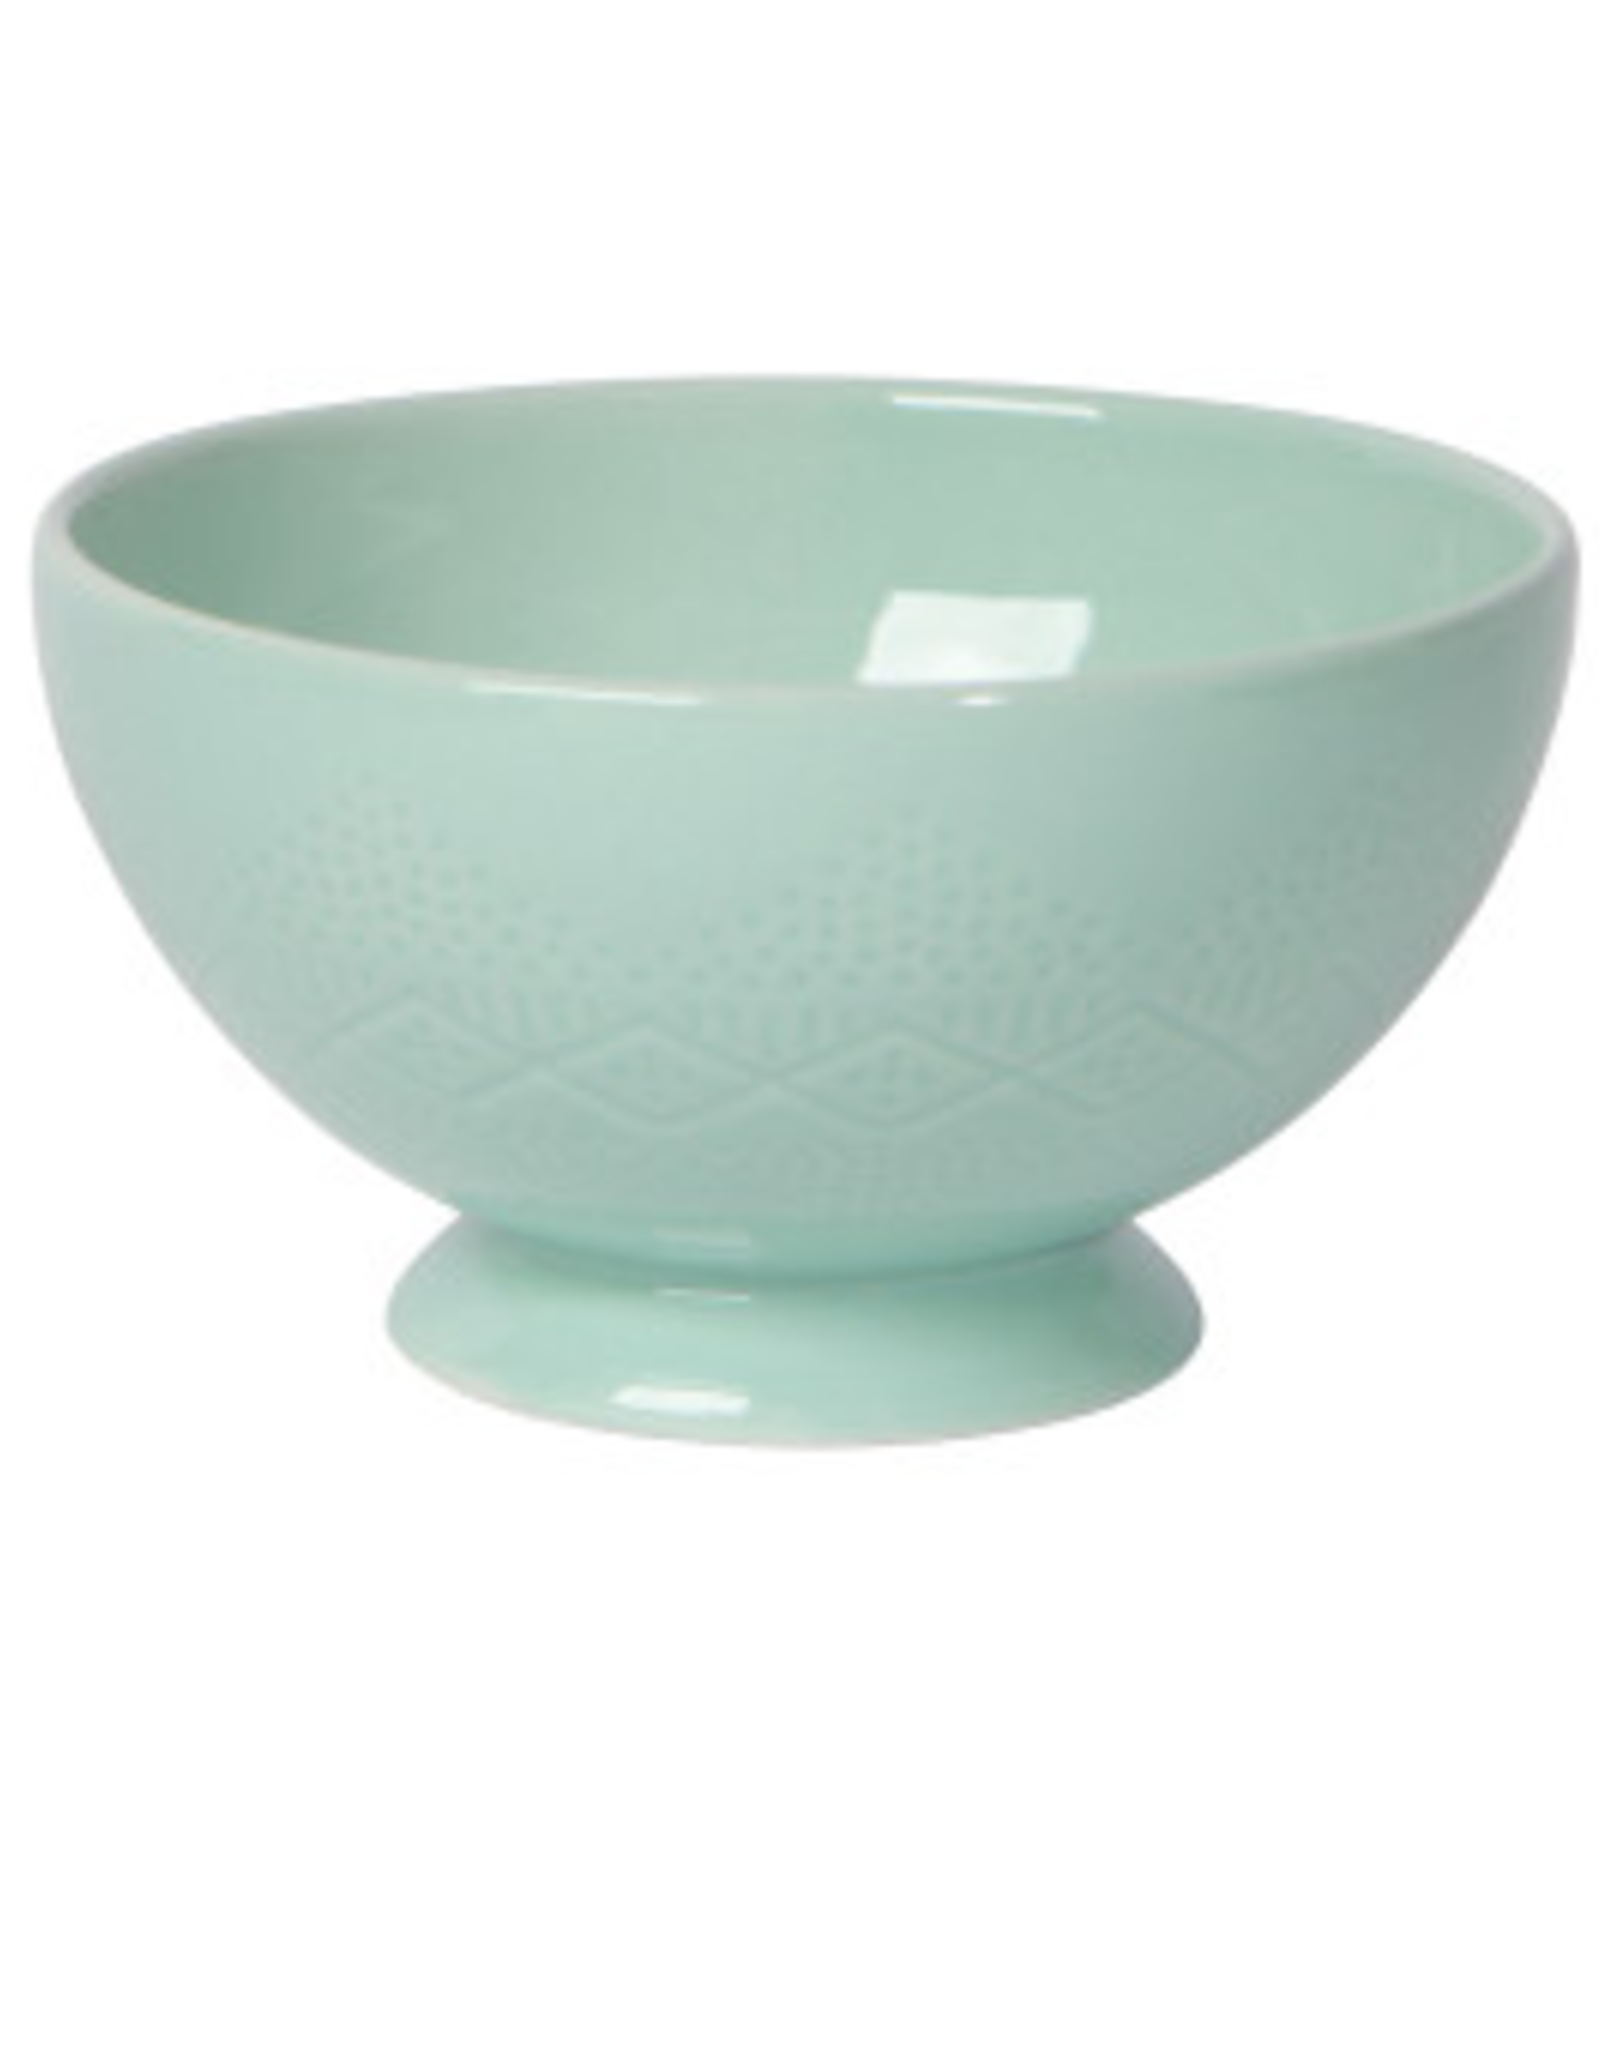 "Now Designs Bowl, Adorn 4.75"" Mint"